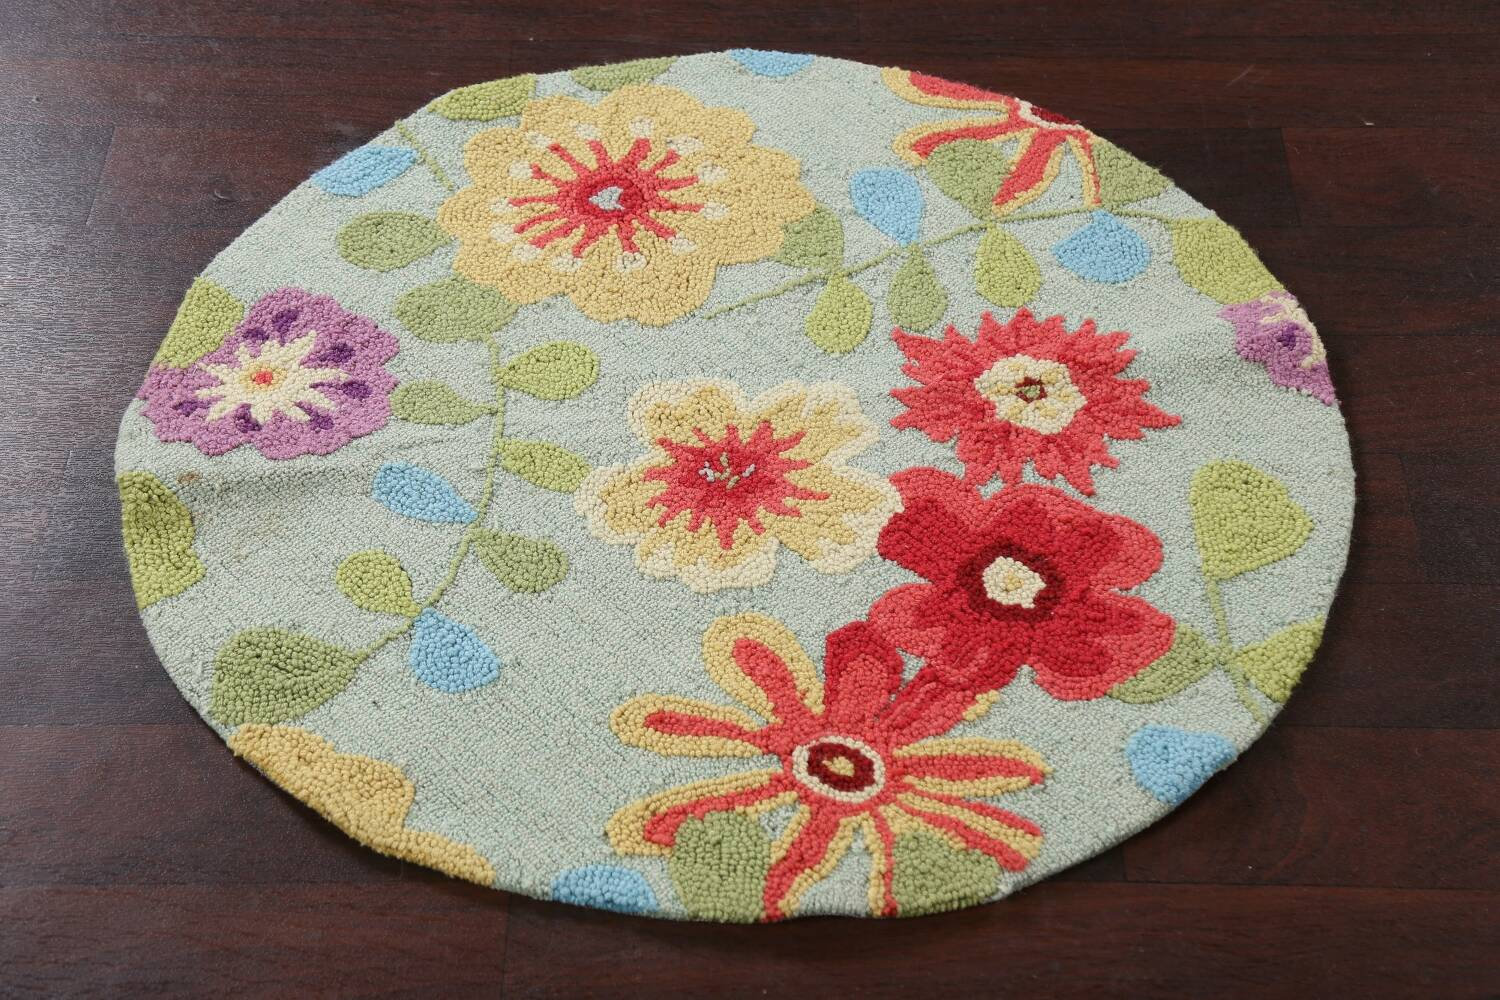 Contemporary Abstract Round Rug 3x3 image 13